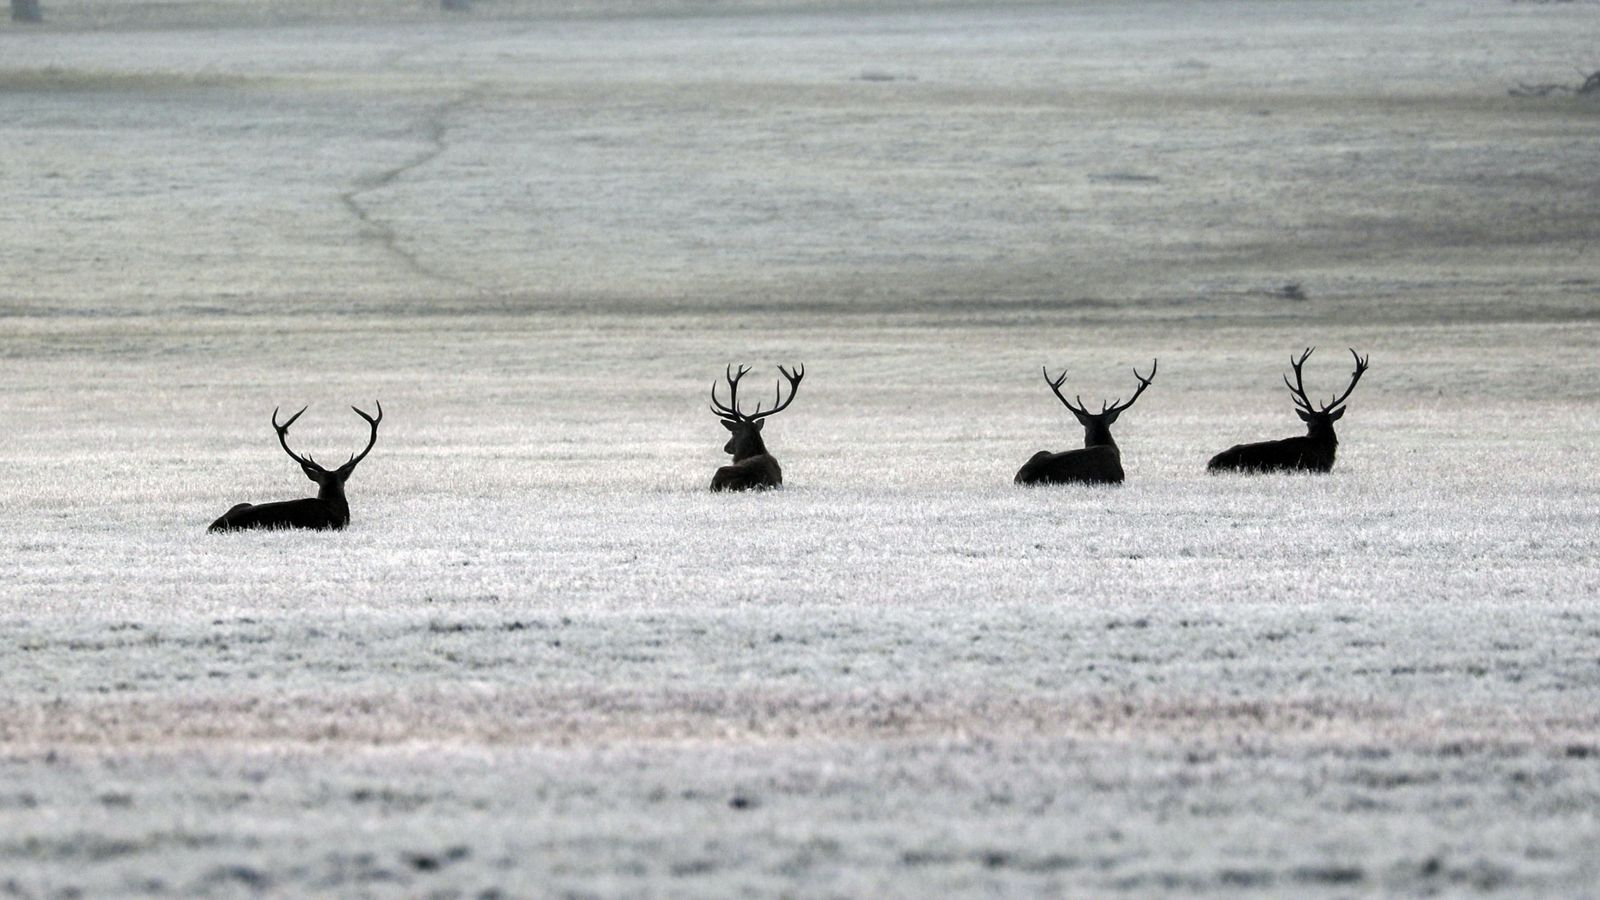 Frost, snow and hail as England's lockdown ends and winter begins